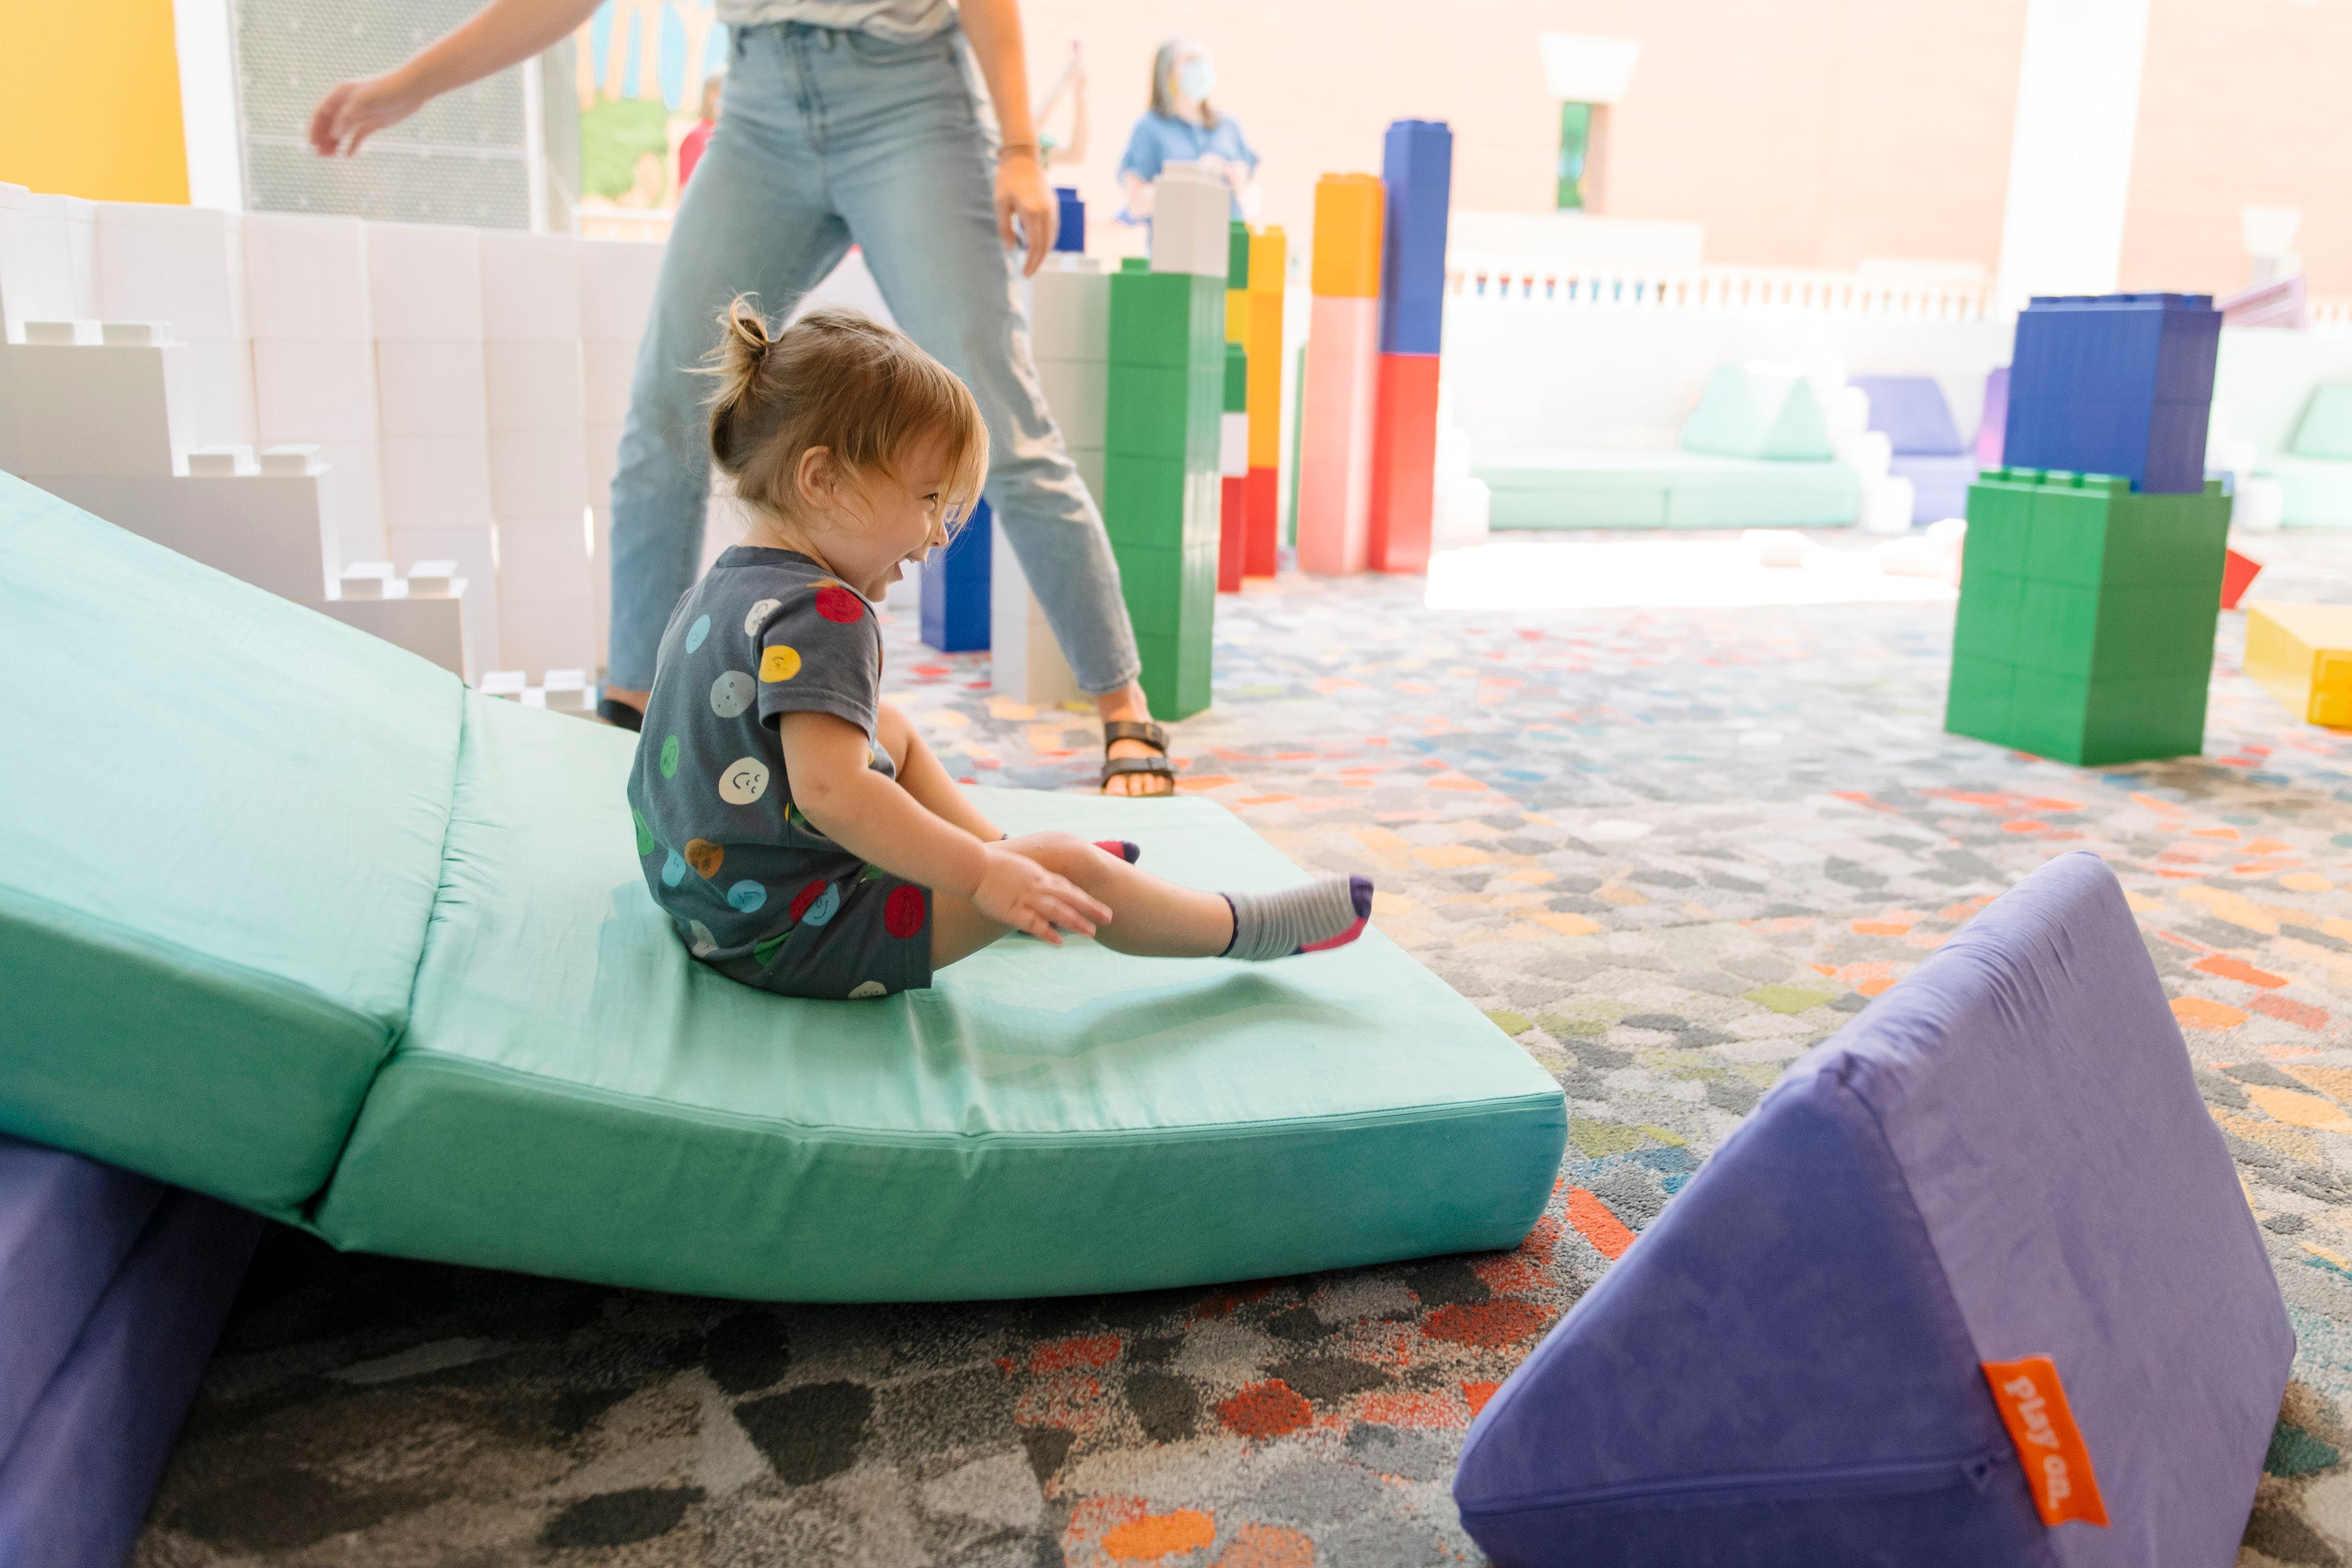 Young child sliding down a Nugget slide at imagiFAB exhibit